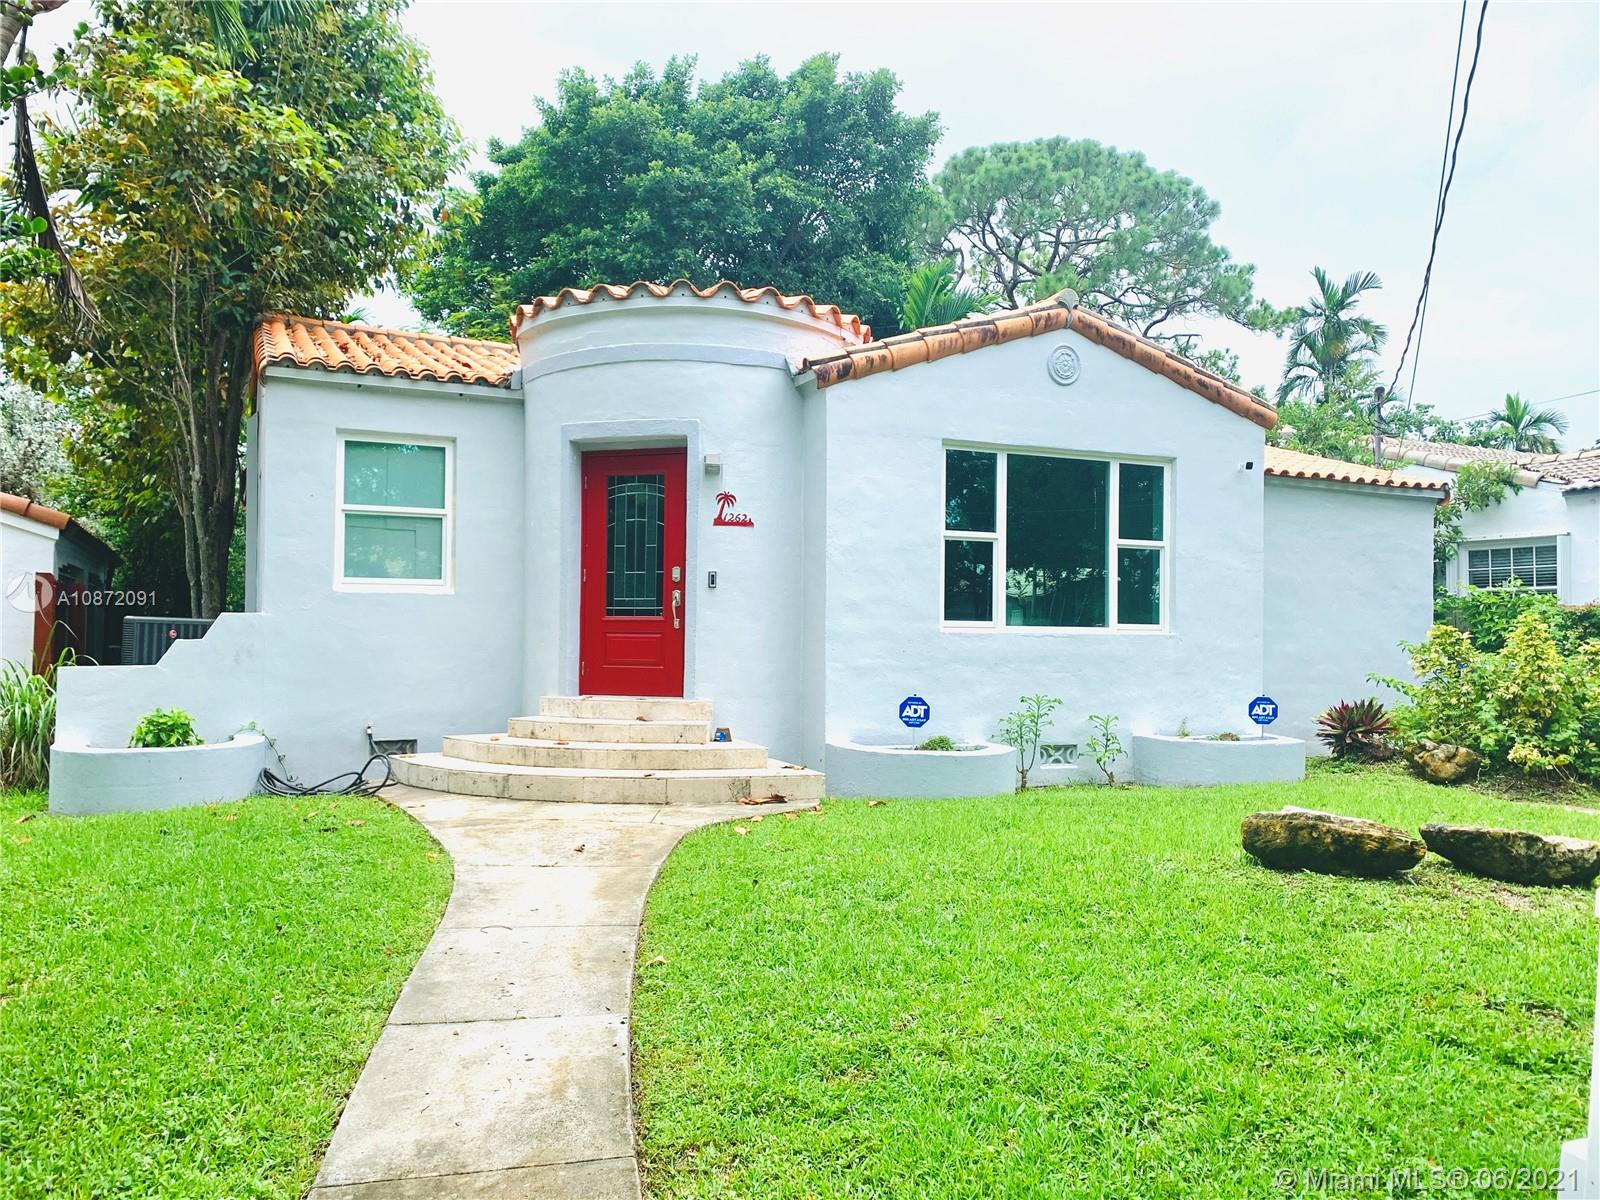 Recently renovated home one block west from The Roads and five minutes from Brickell Avenue.  This charming house is perfect for a growing family; enjoy afternoon walks on the beautiful Boulevard on 13th Avenue.  Location, location, location, close to restaurants, schools, shopping centers while nestled in a quiet street.  Home has a new AC unit, impact windows and door, freshly painted, Ring video doorbell, ADT security system, and much more, with room for a pool.  PLEASE SEE BROKER REMARKS.